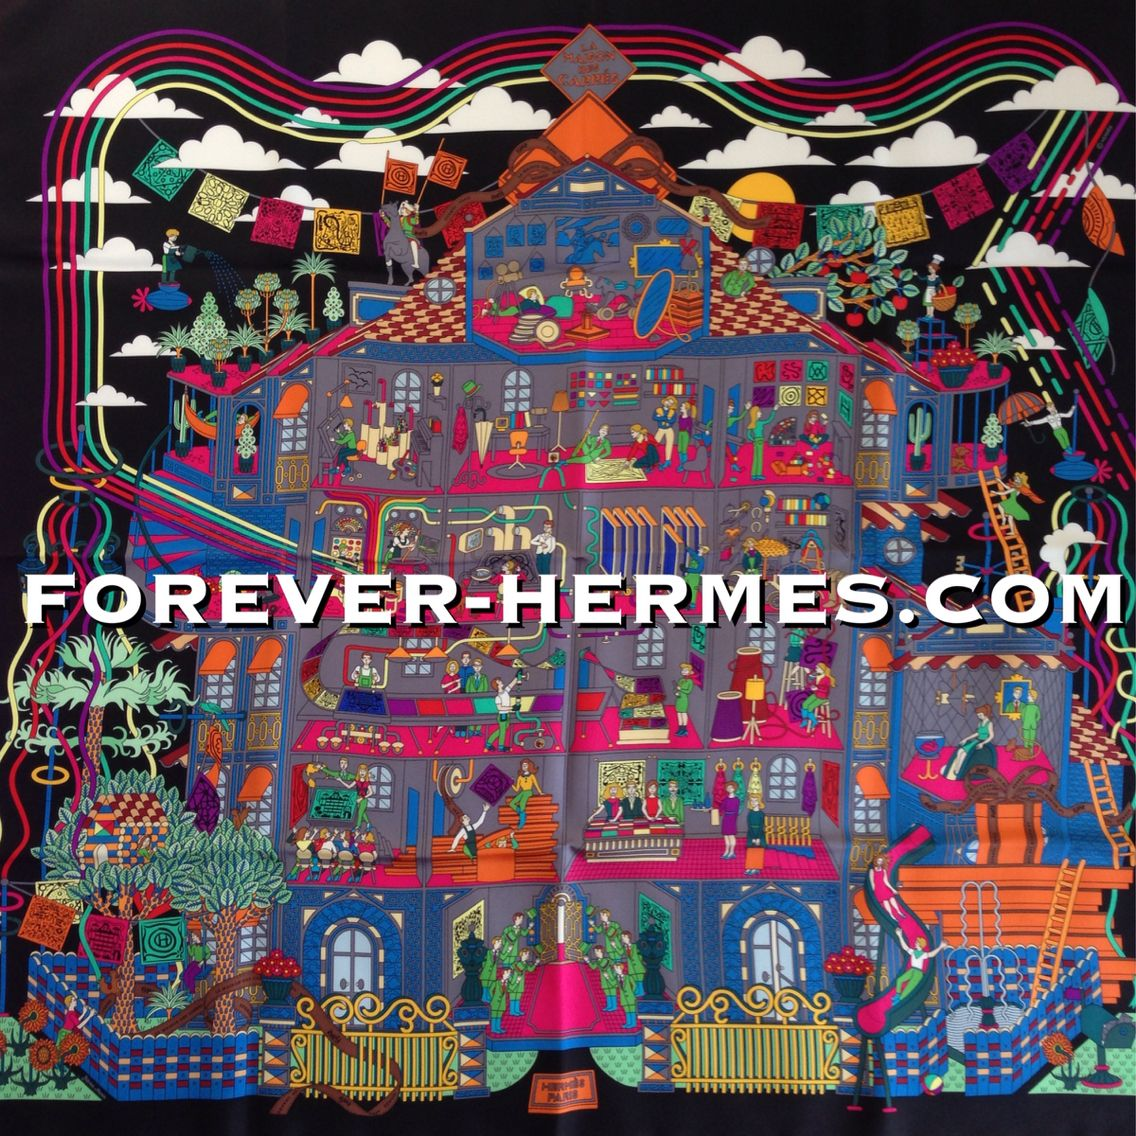 Ever wondered how to make a Hermes Paris Carre scarf? See it in our store http://forever-hermes.com #ForeverHermes this design by Pierre Marie titled La Maison Des Carres that shows every detail of the #HermesScarf creation!! Choosing the #design , the colors, the materials, like in a #dollhouse we can peek inside #couture house Hermes's laboratory! #dapper #gentleman #MensSuit #MensWear #mensfashion #menstyle #womenswear #womensfashion #hermesaddict #hermescollector #HermesParis #Hermes